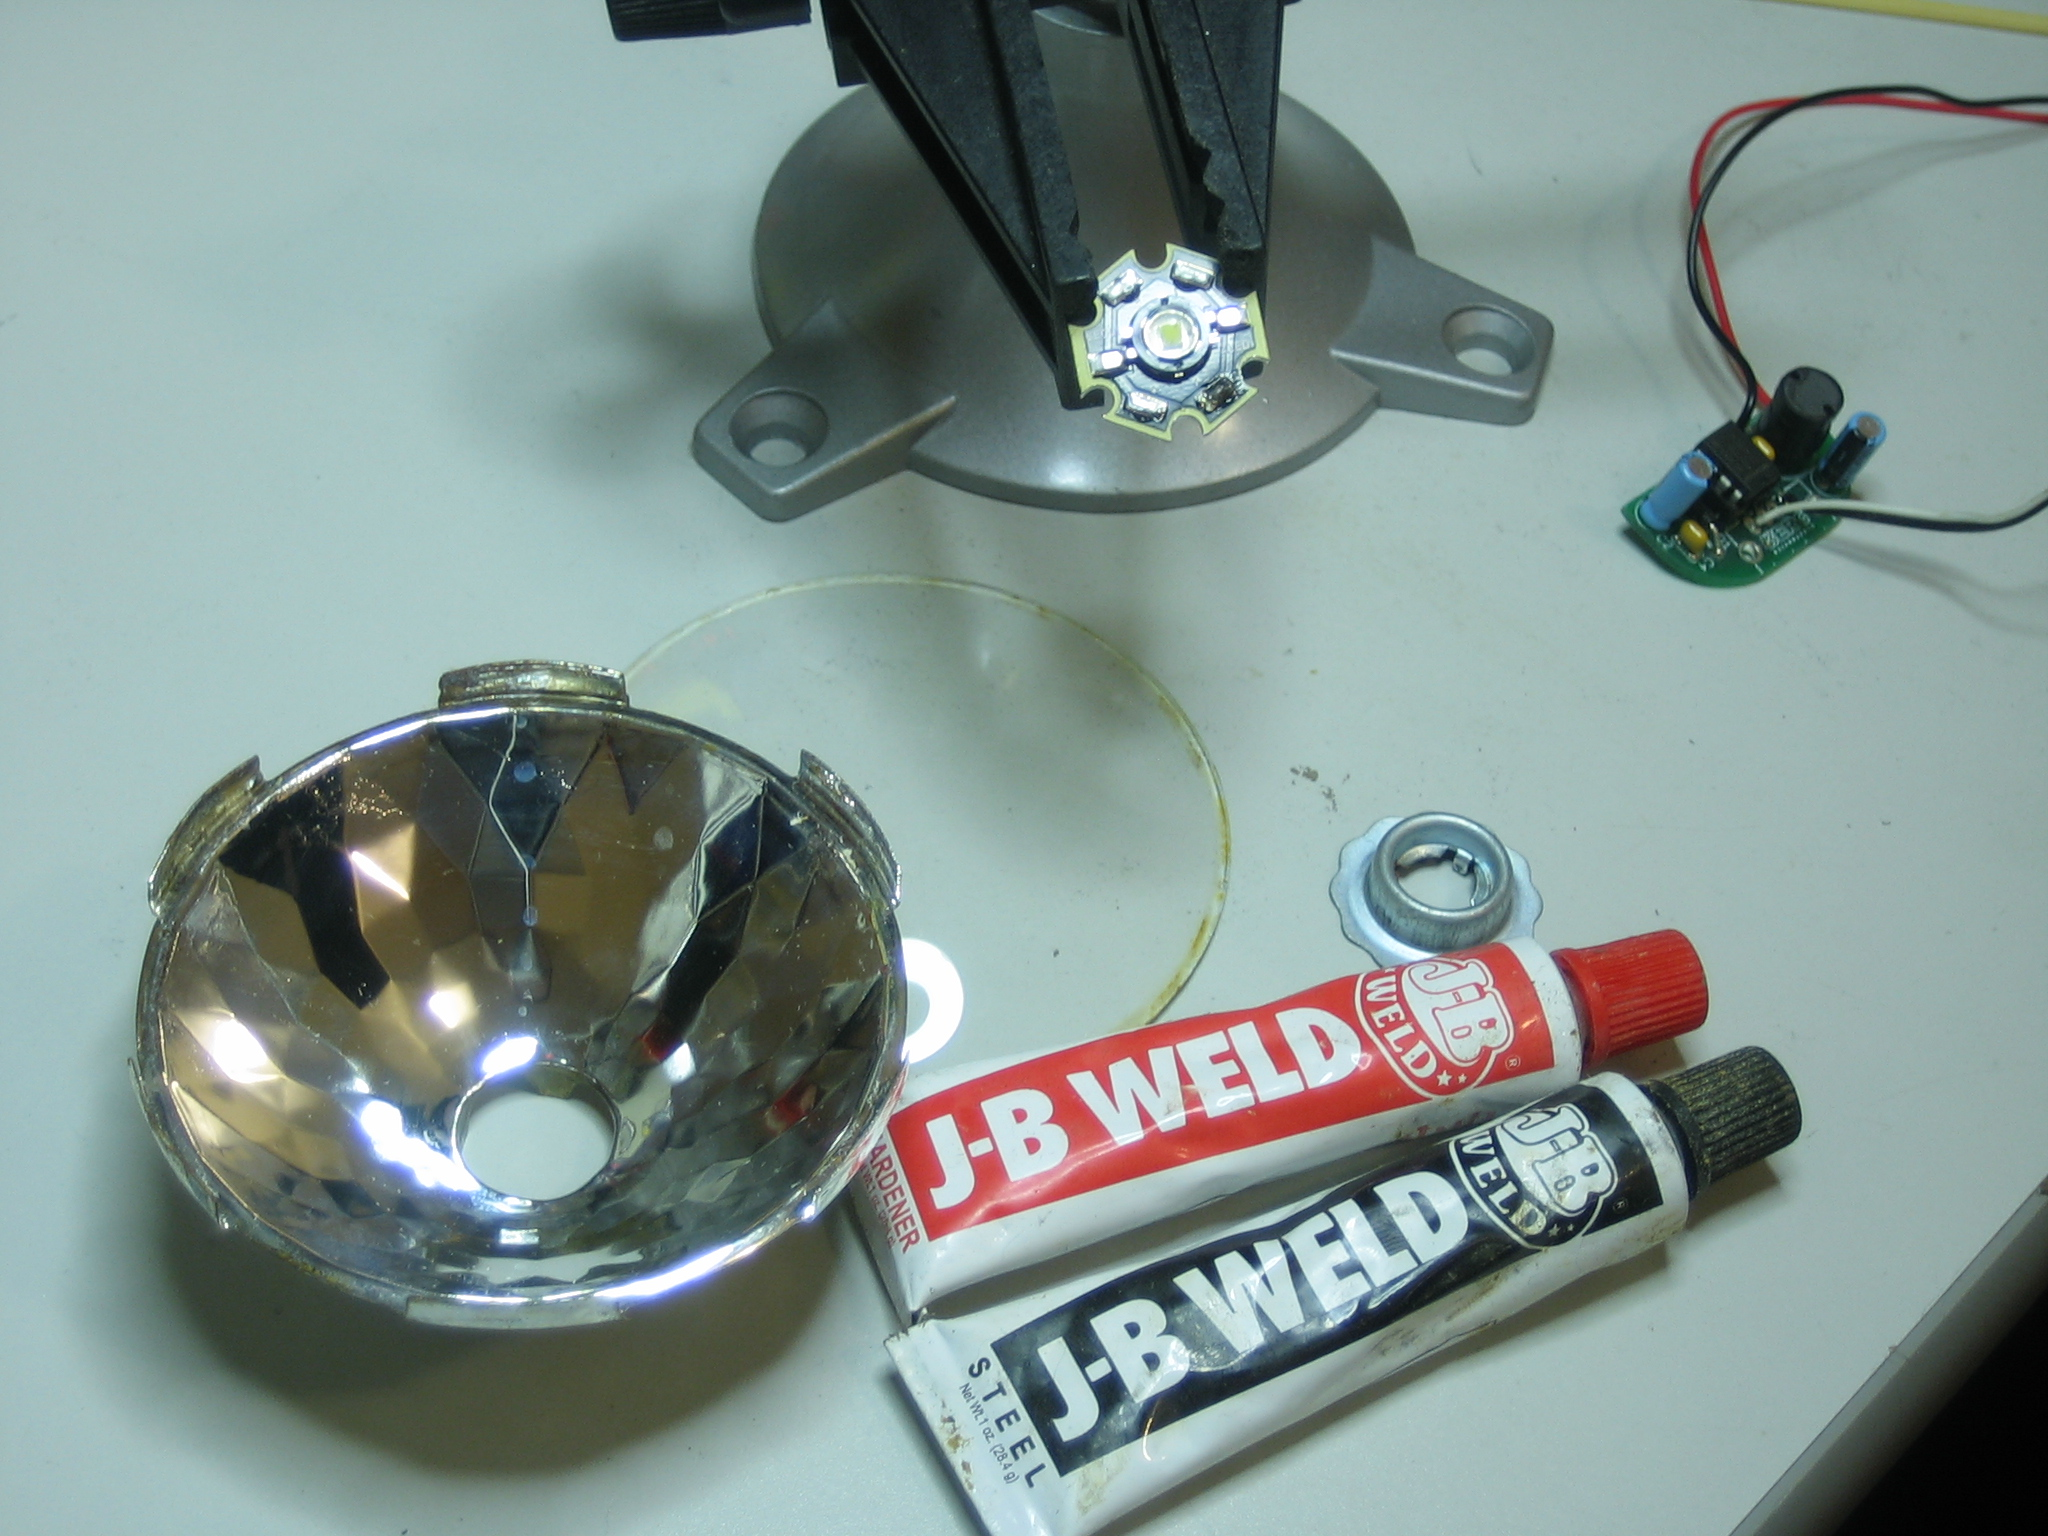 Convert your vintage light to LED power